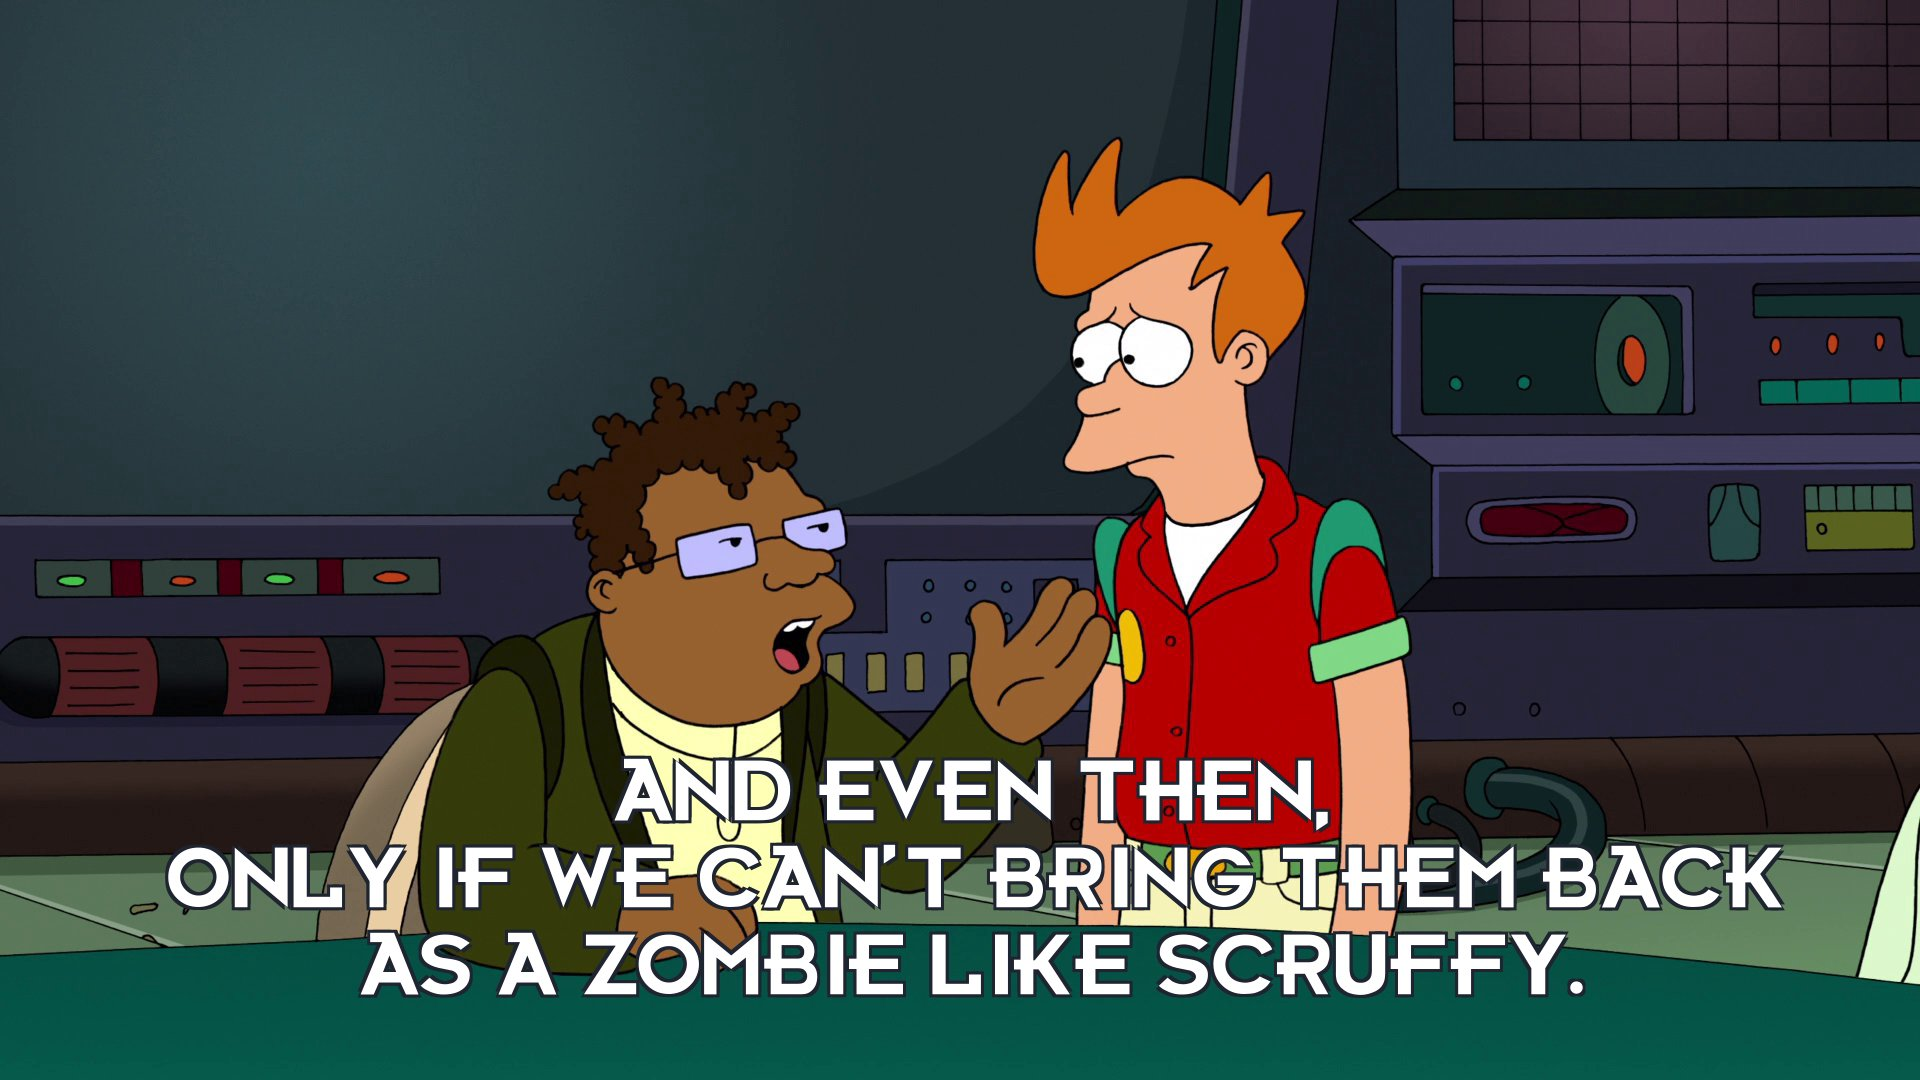 Hermes Conrad: And even then, only if we can't bring them back as a zombie like Scruffy.